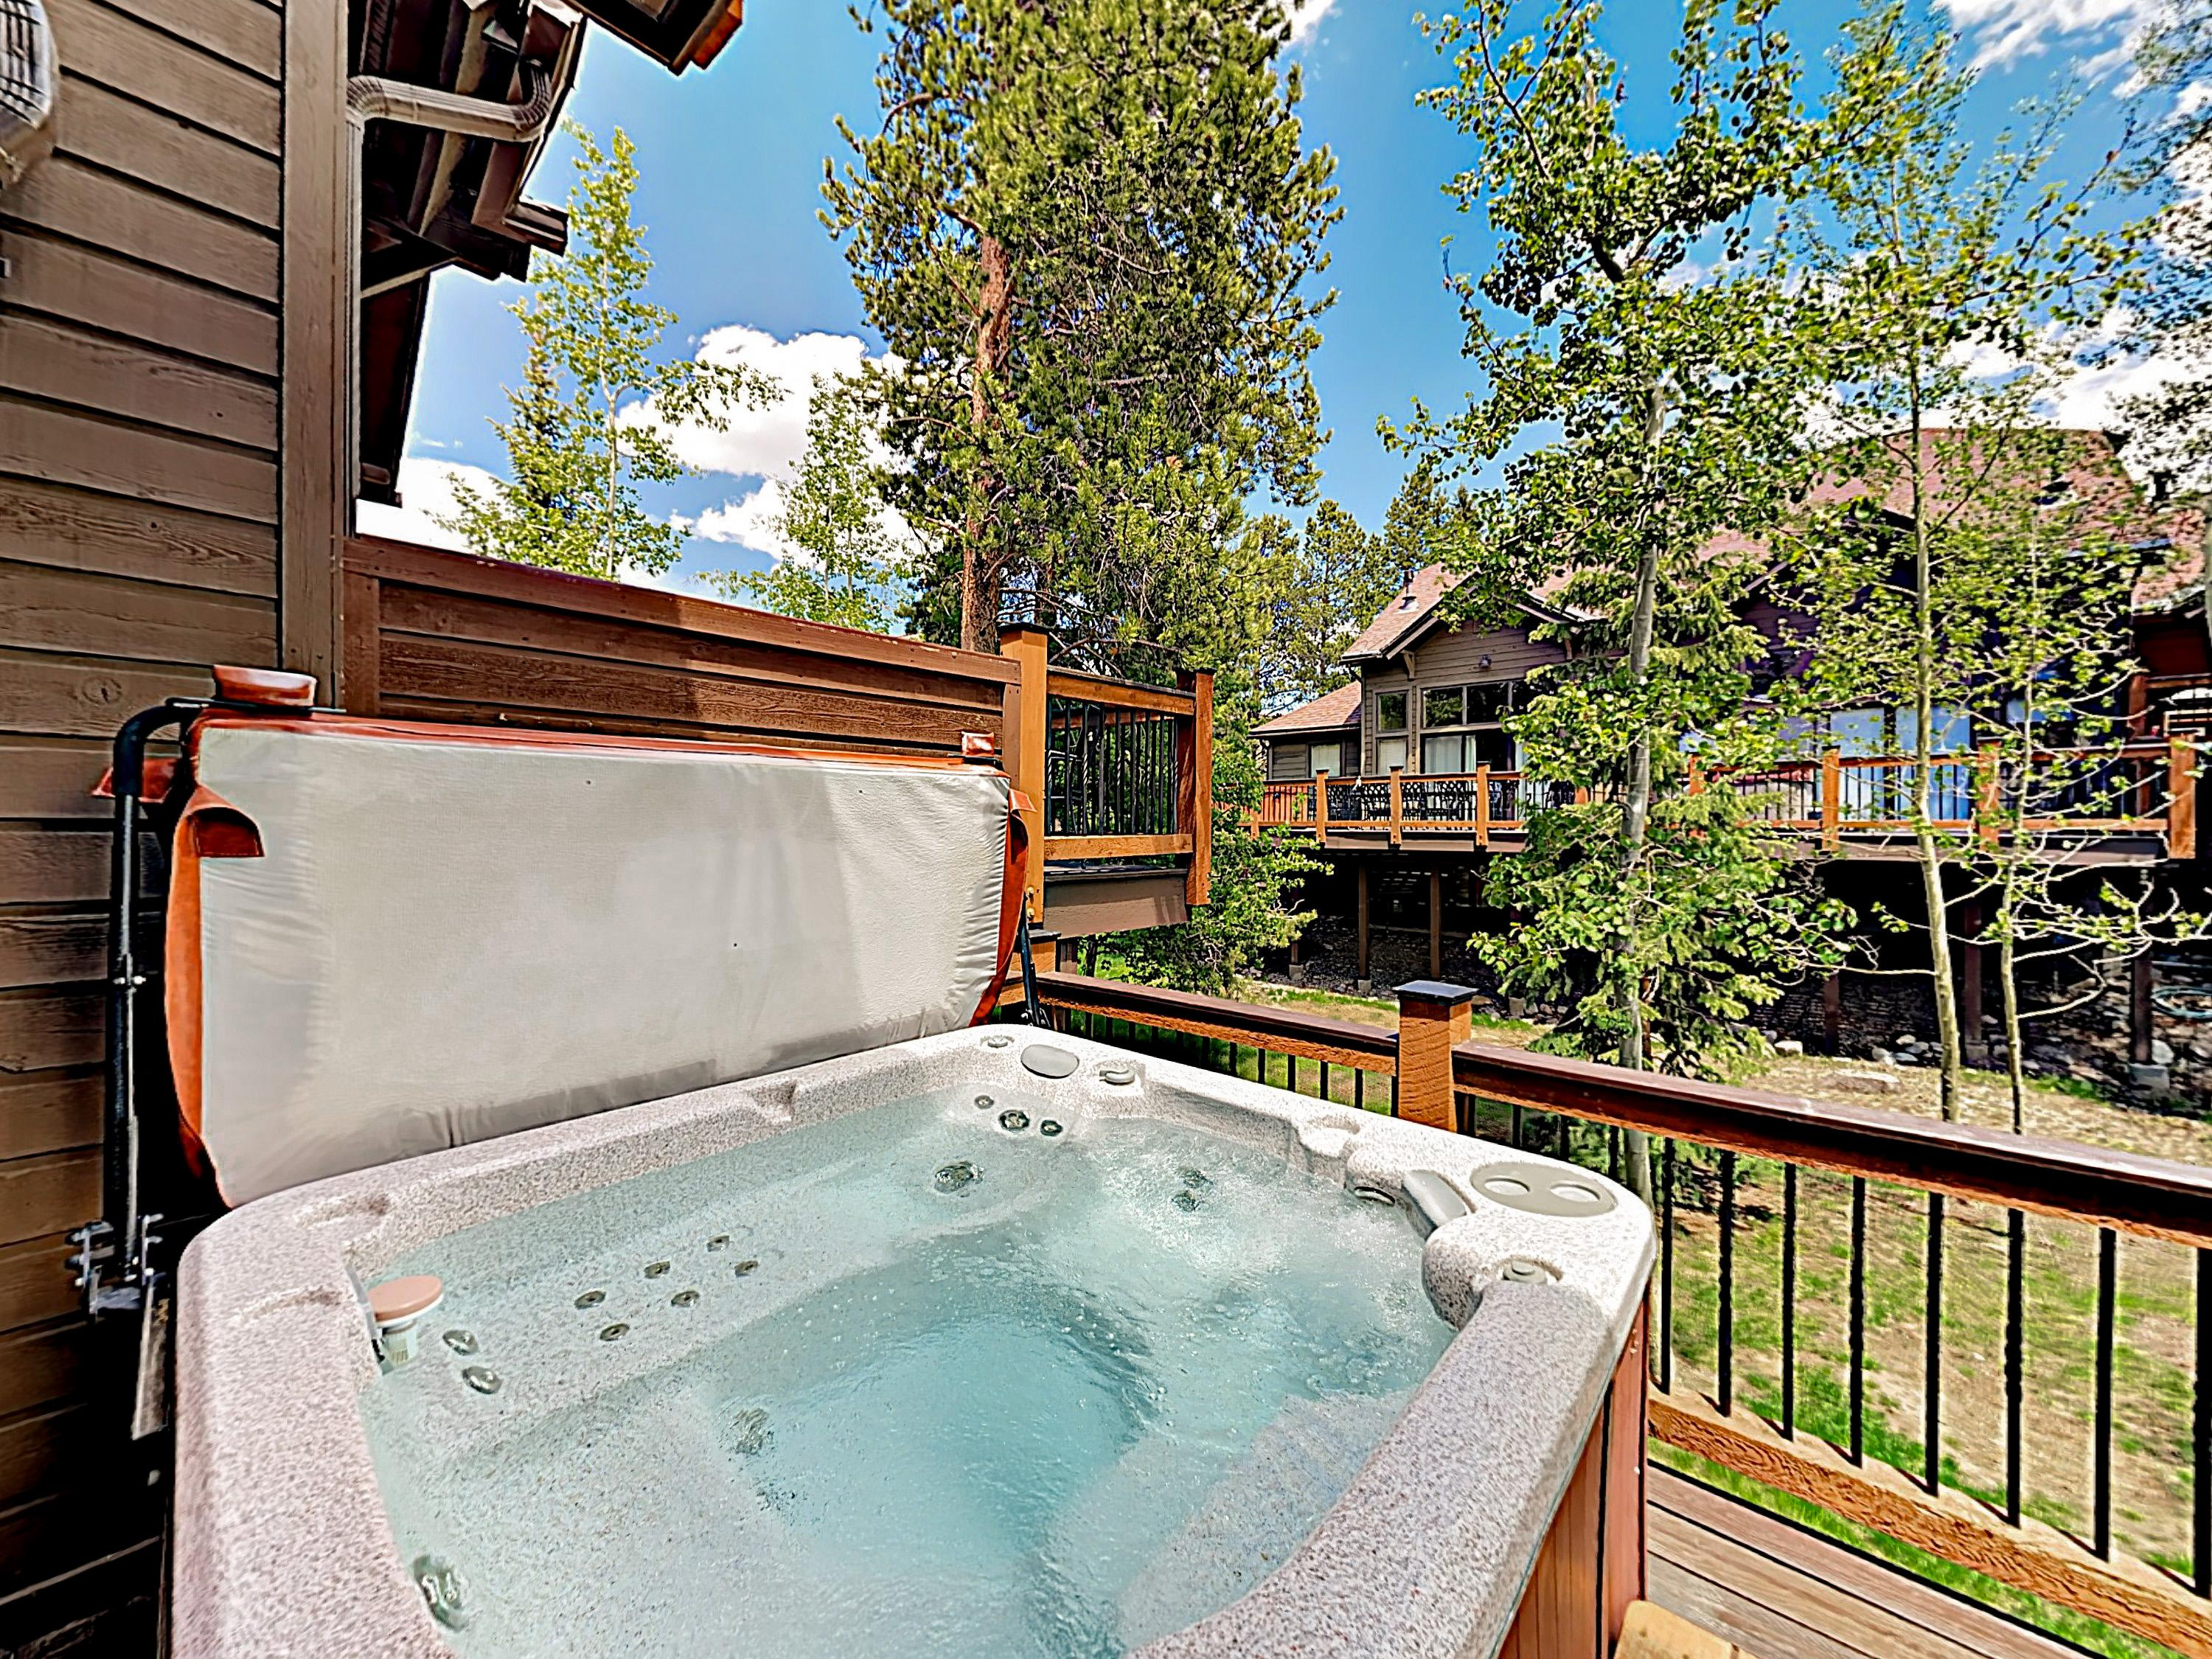 Unwind after a day of fun in the private hot tub on the porch.